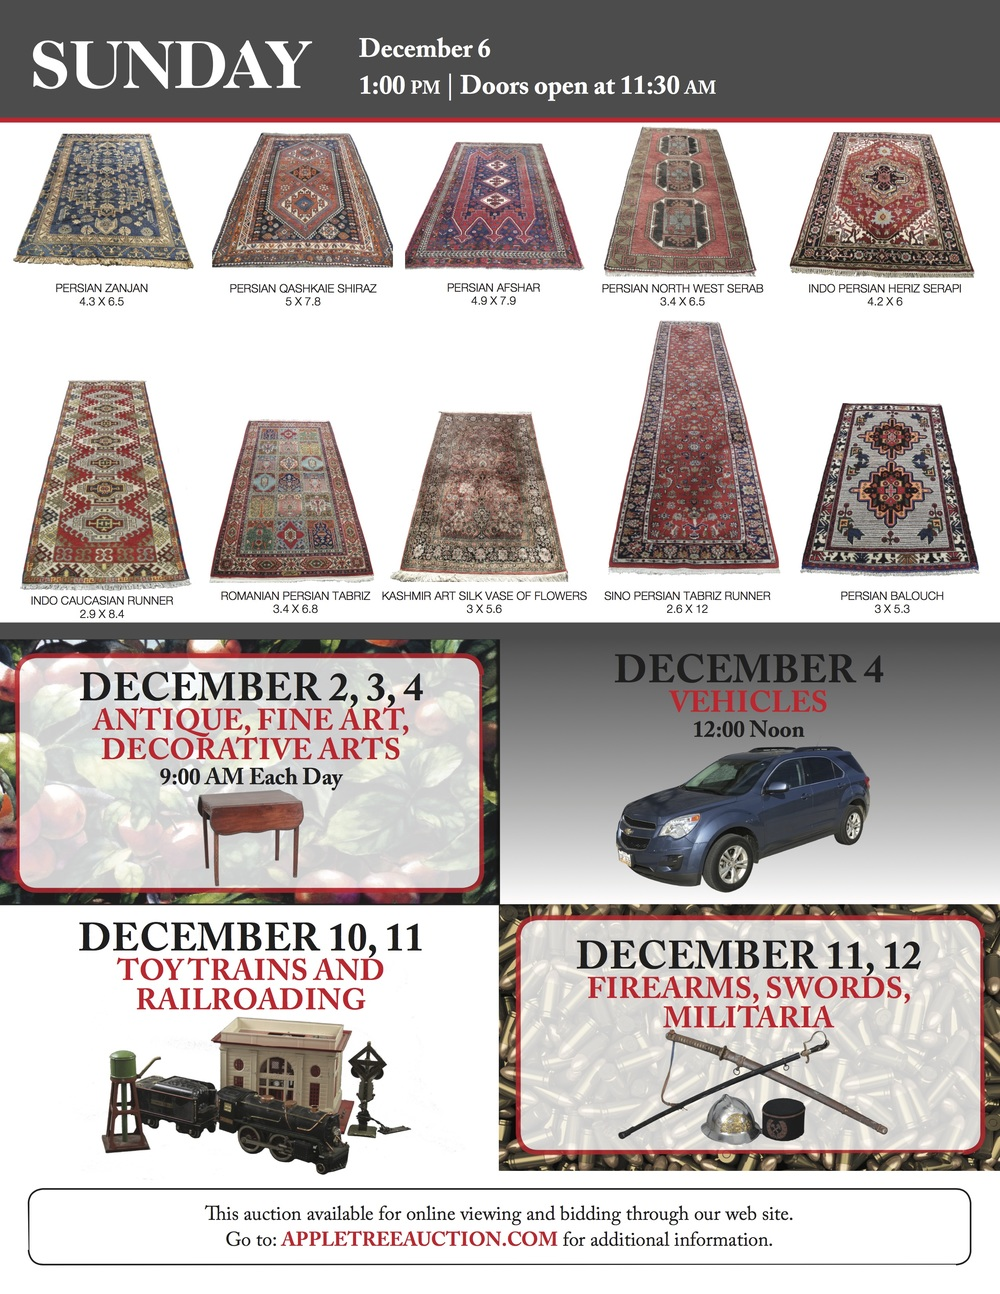 Dec Oriental Rug Flyer 15 high res_3.jpg